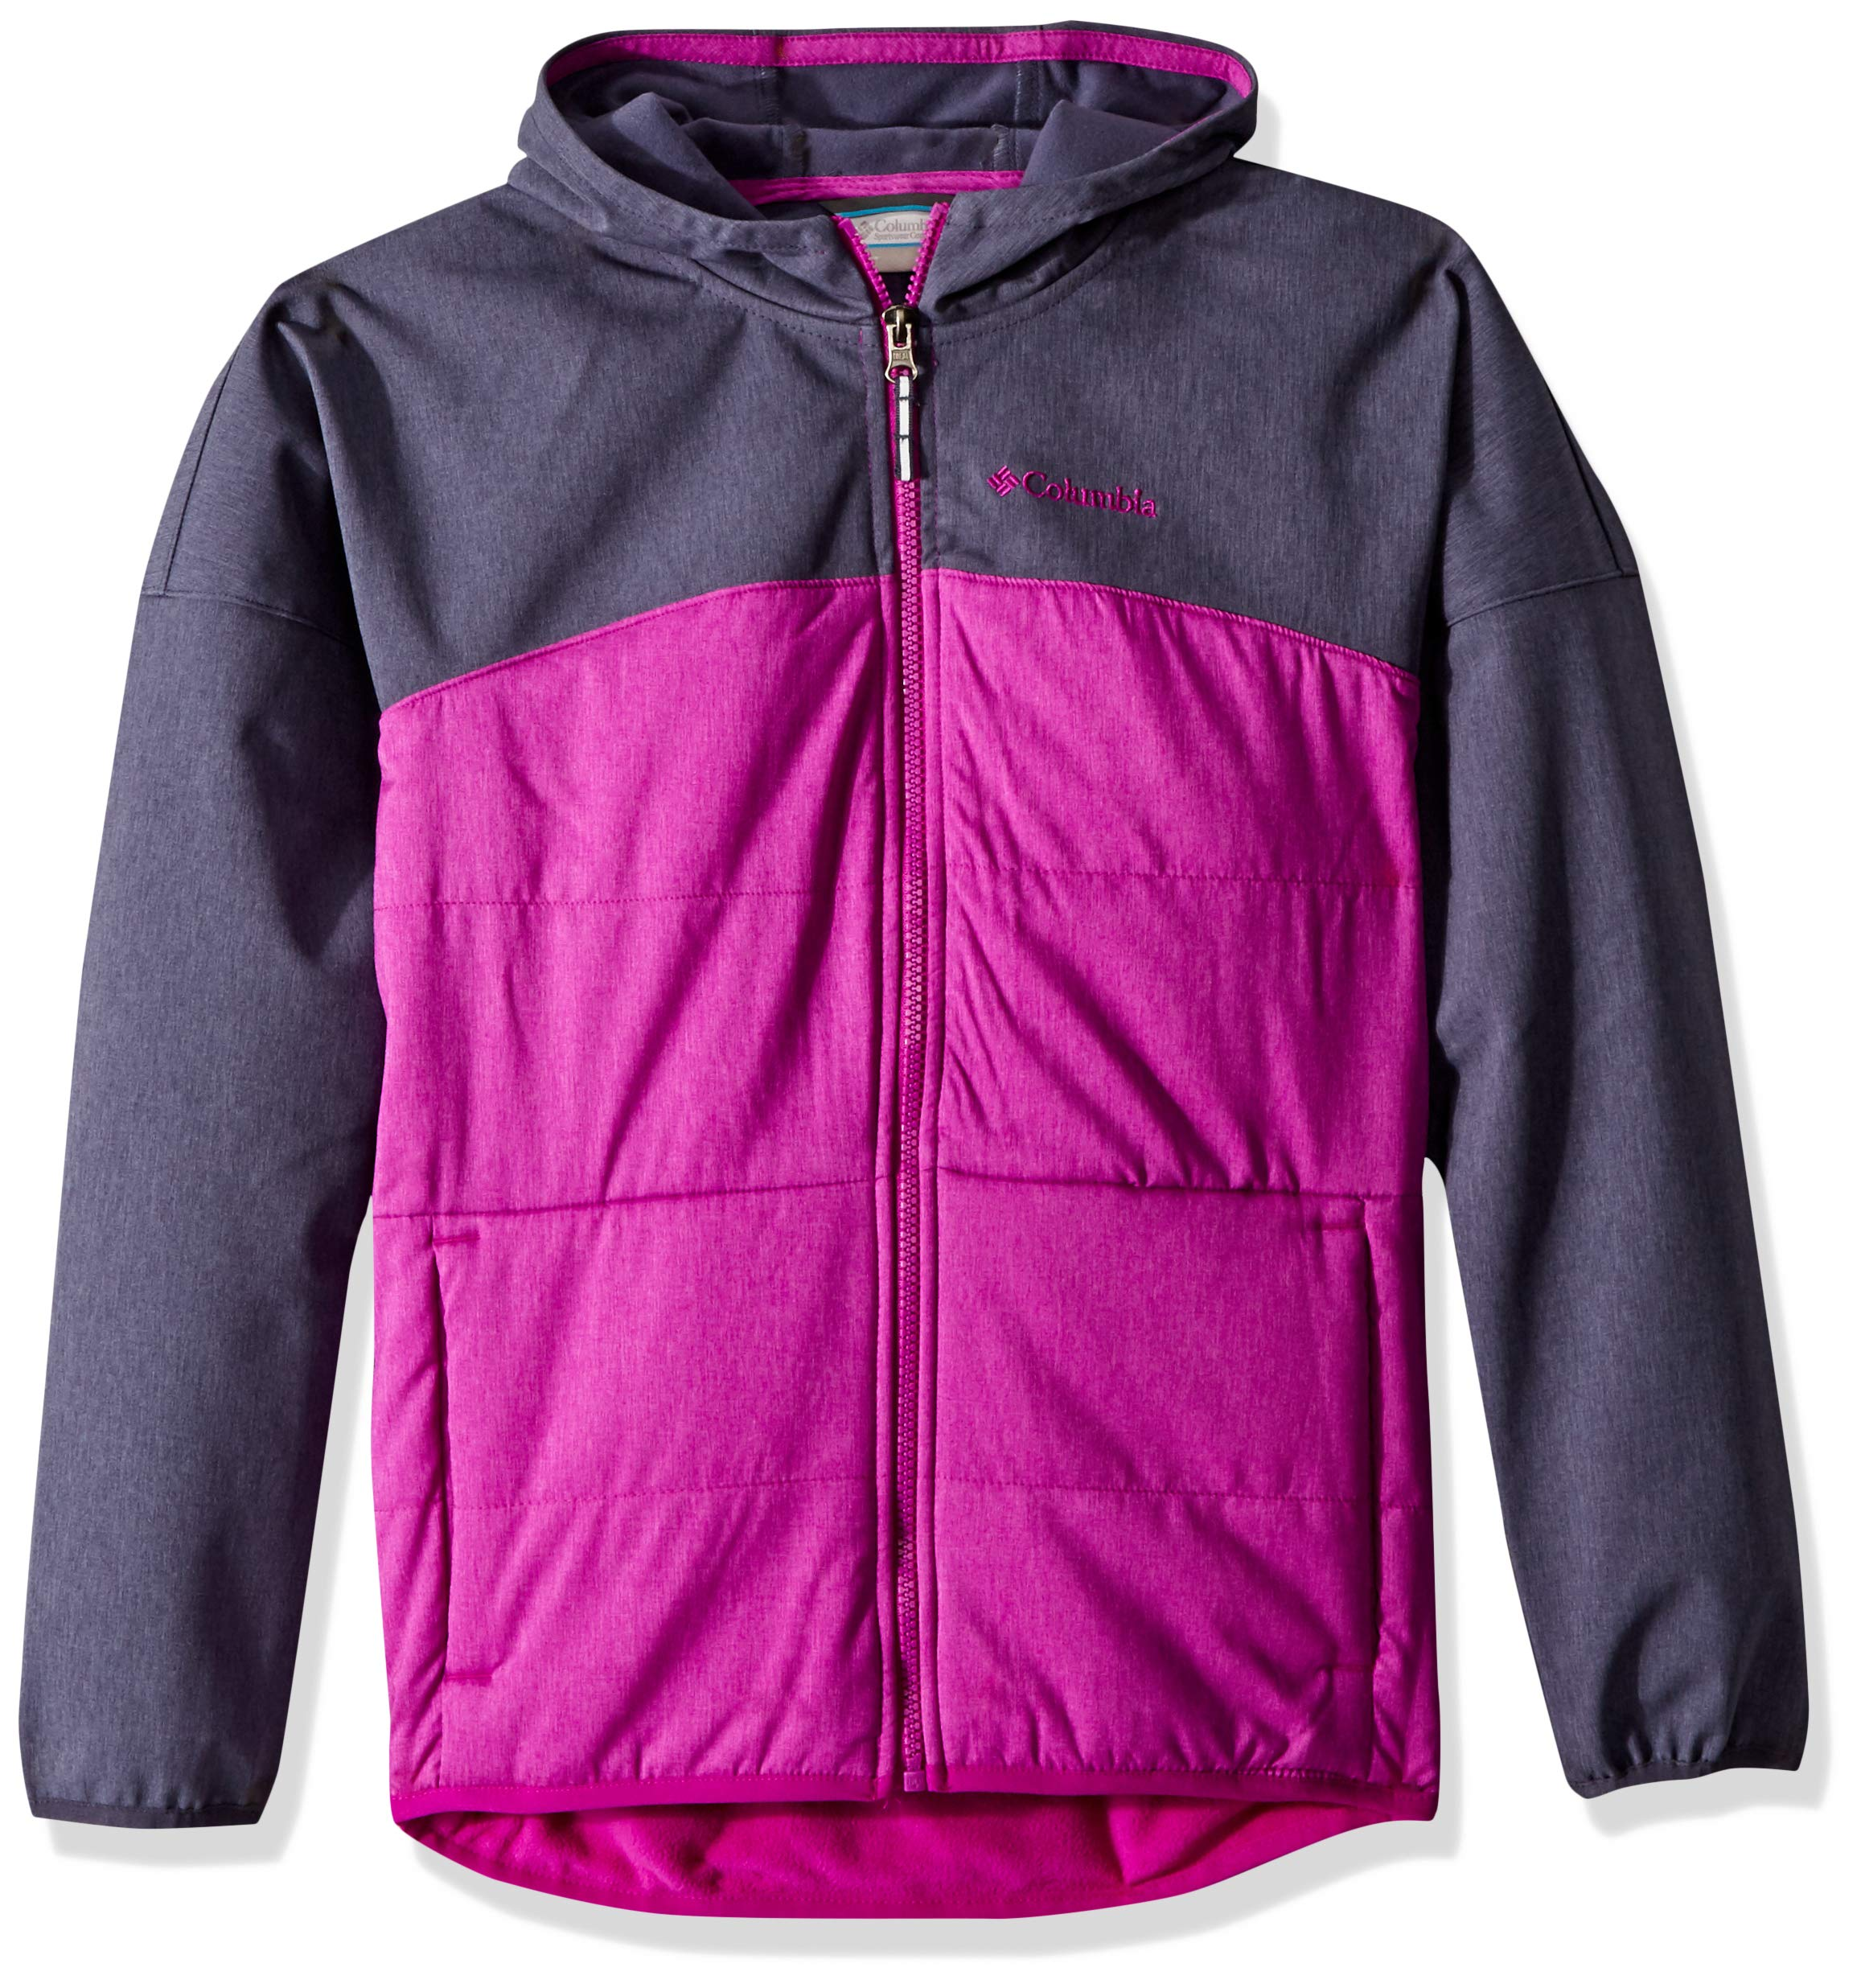 Columbia Little Girl's Take A Hike Softshell Top, Small, Nocturnal/Bright Plum